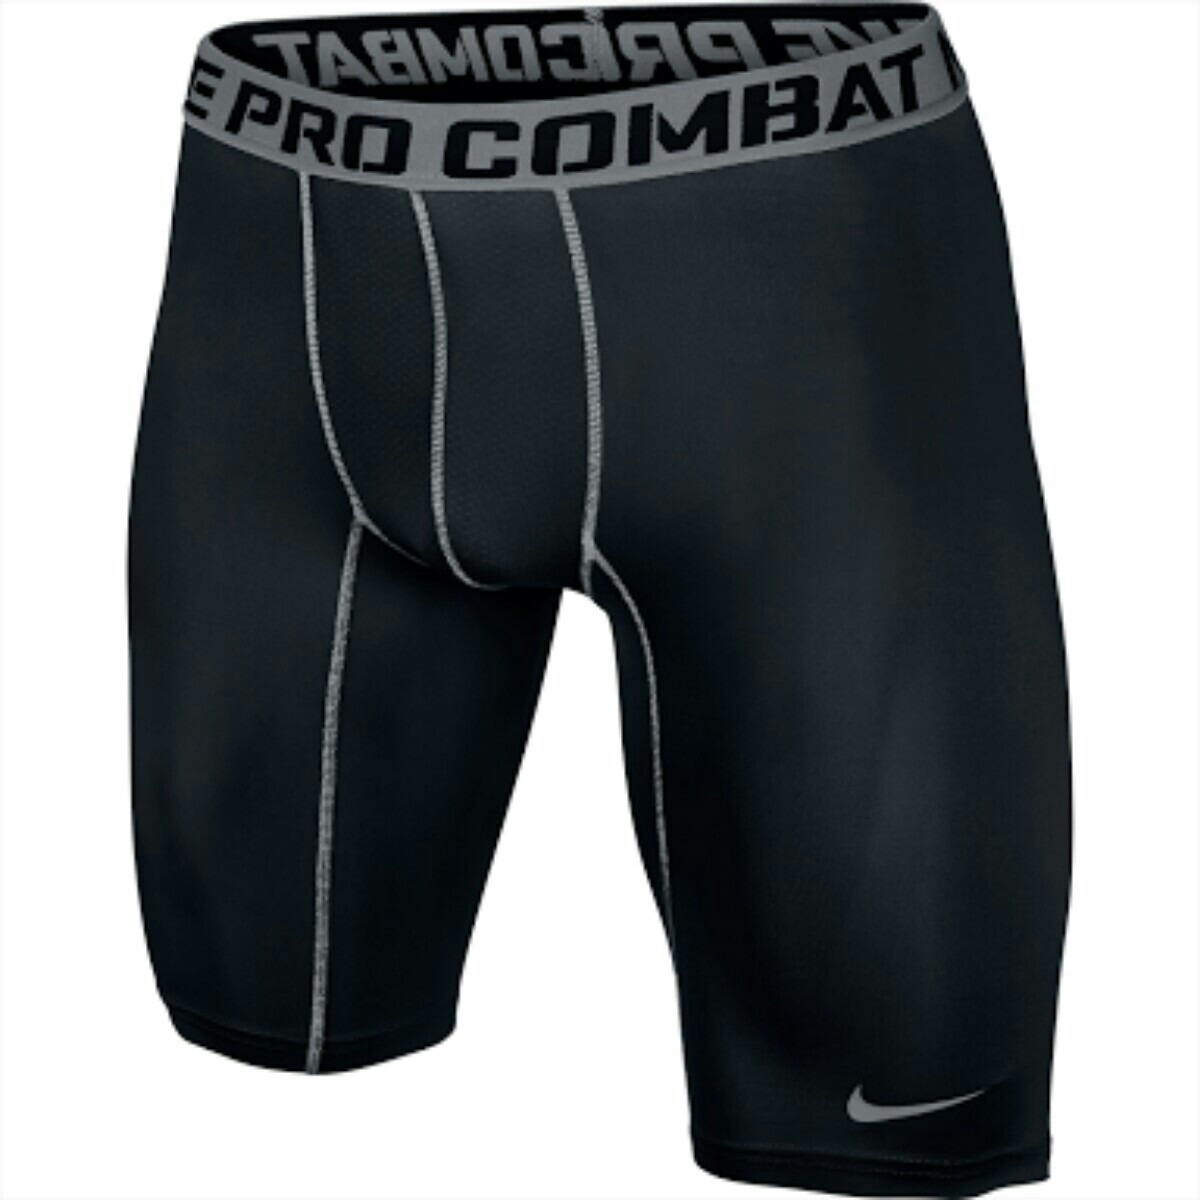 licra nike pro combat compression talla s en mercado libre. Black Bedroom Furniture Sets. Home Design Ideas